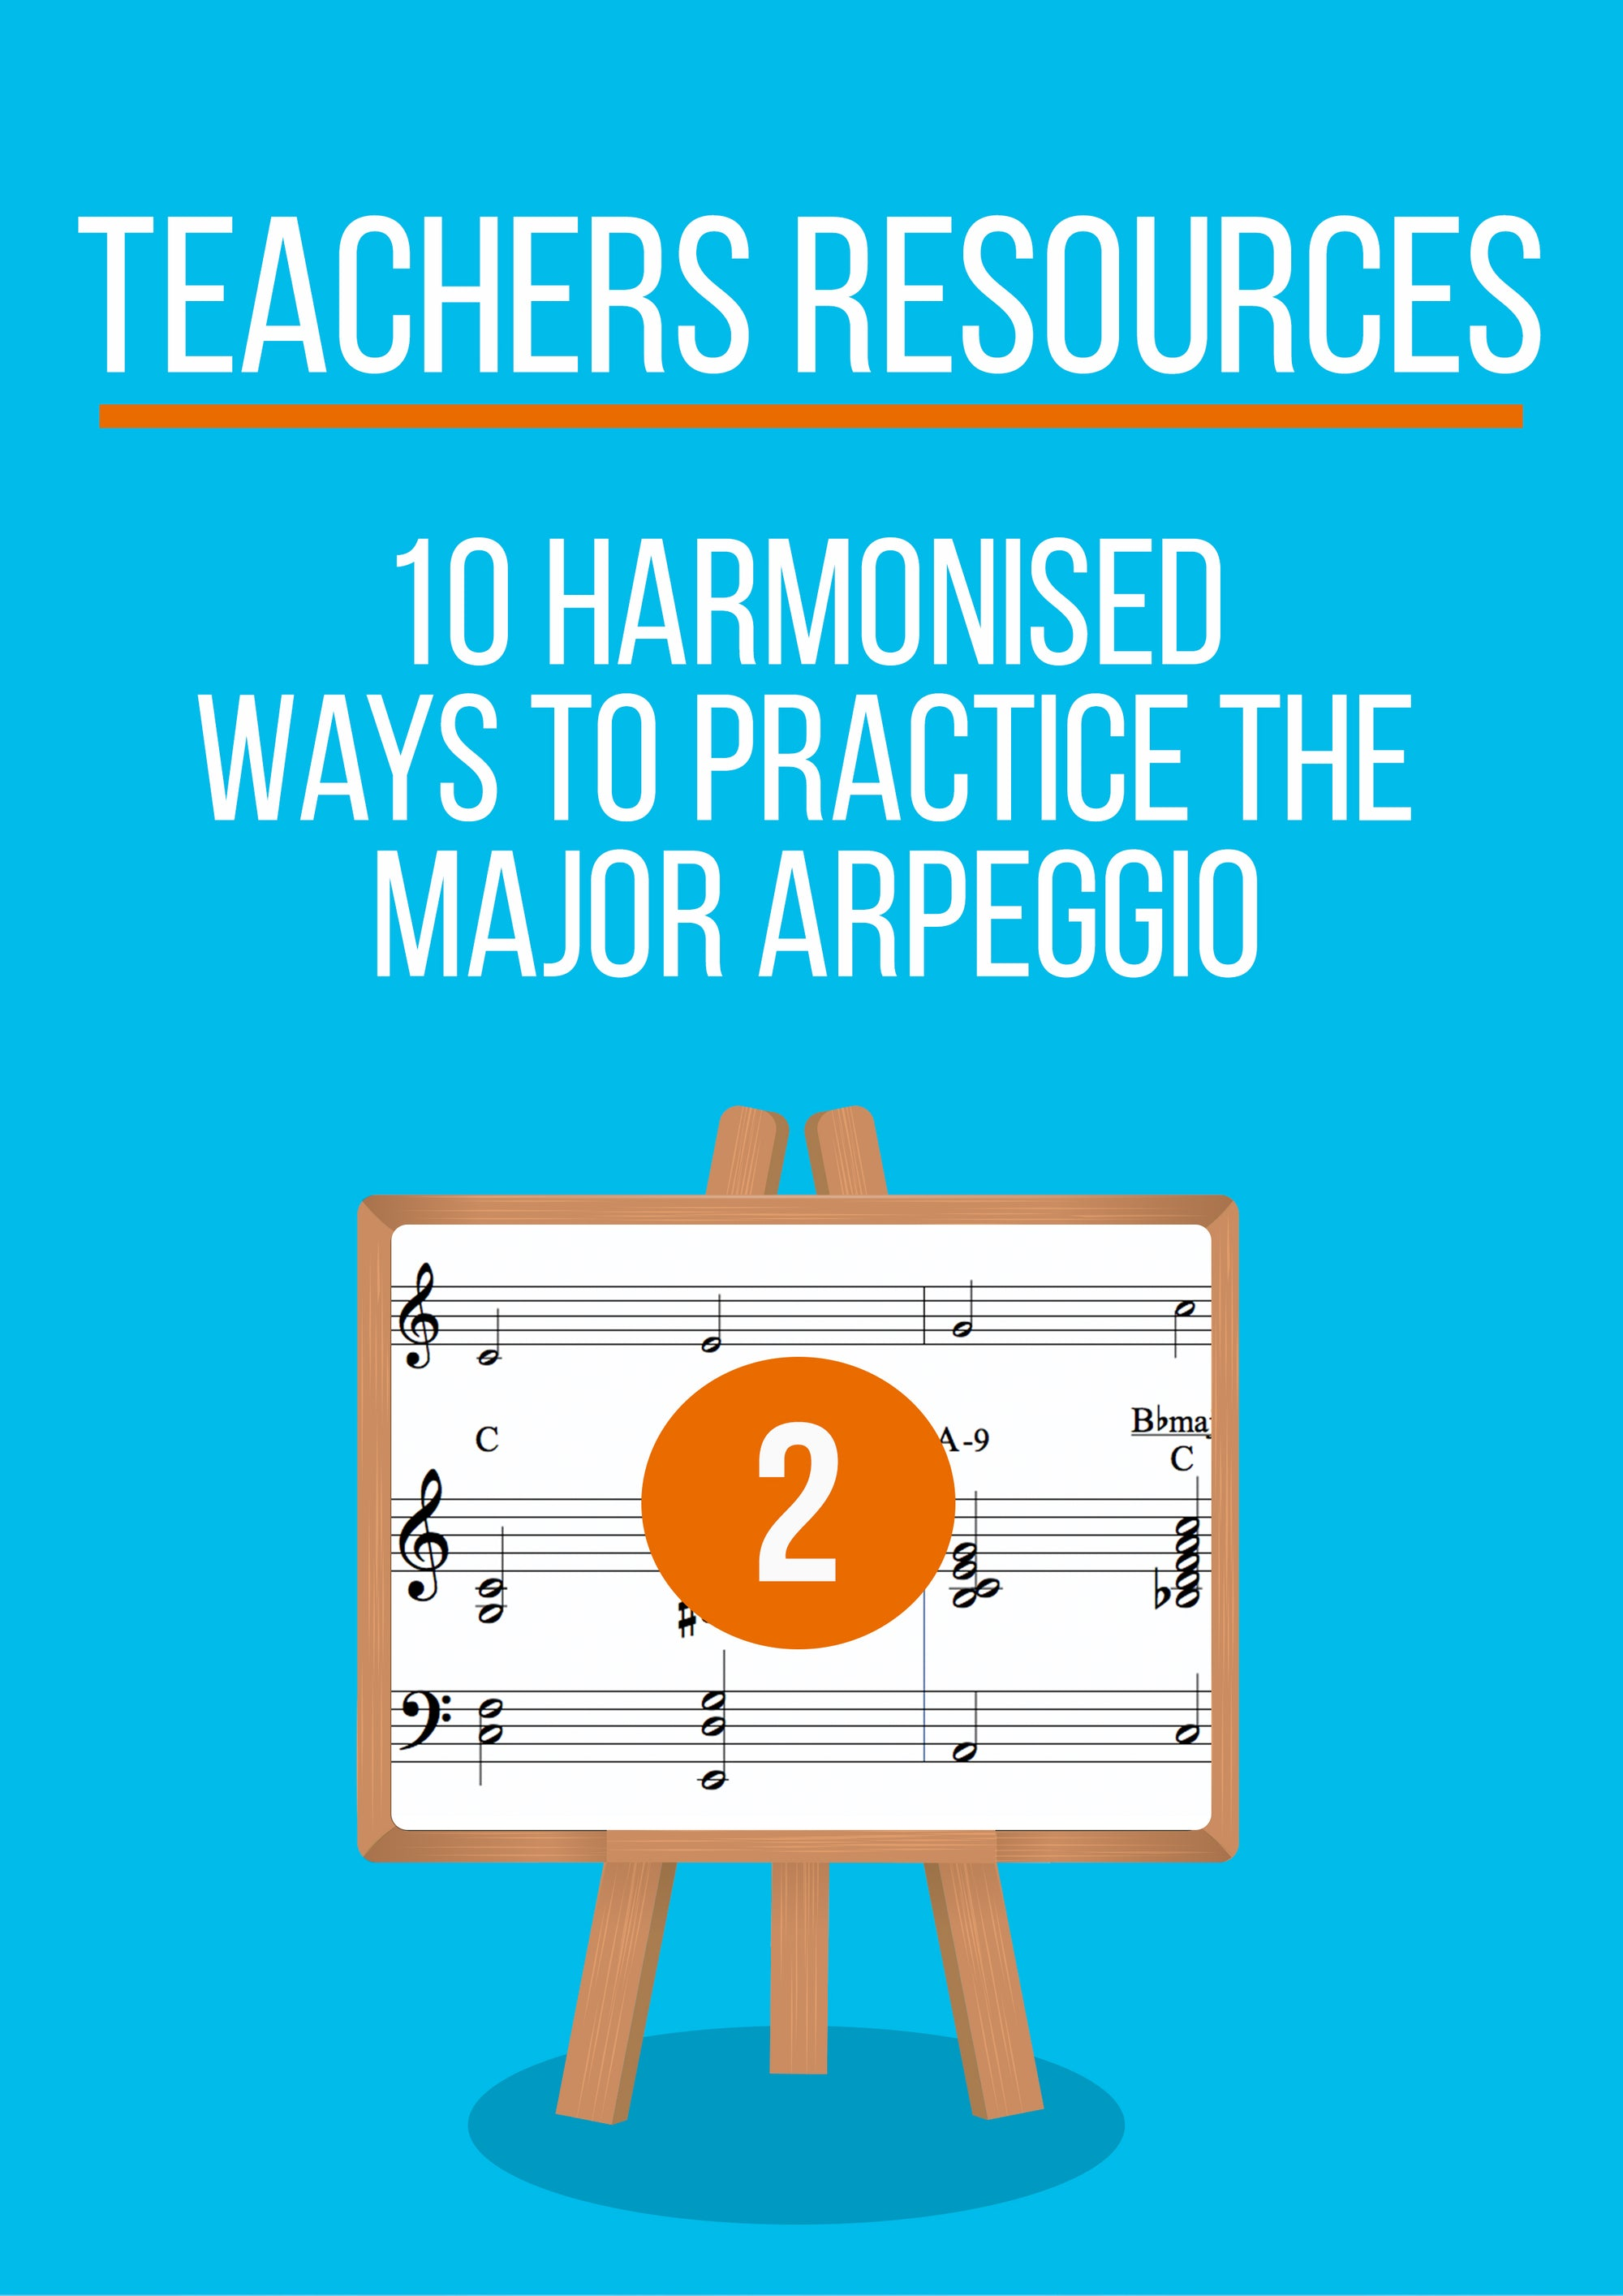 Teachers resources # 2- Harmonising Major arpeggios